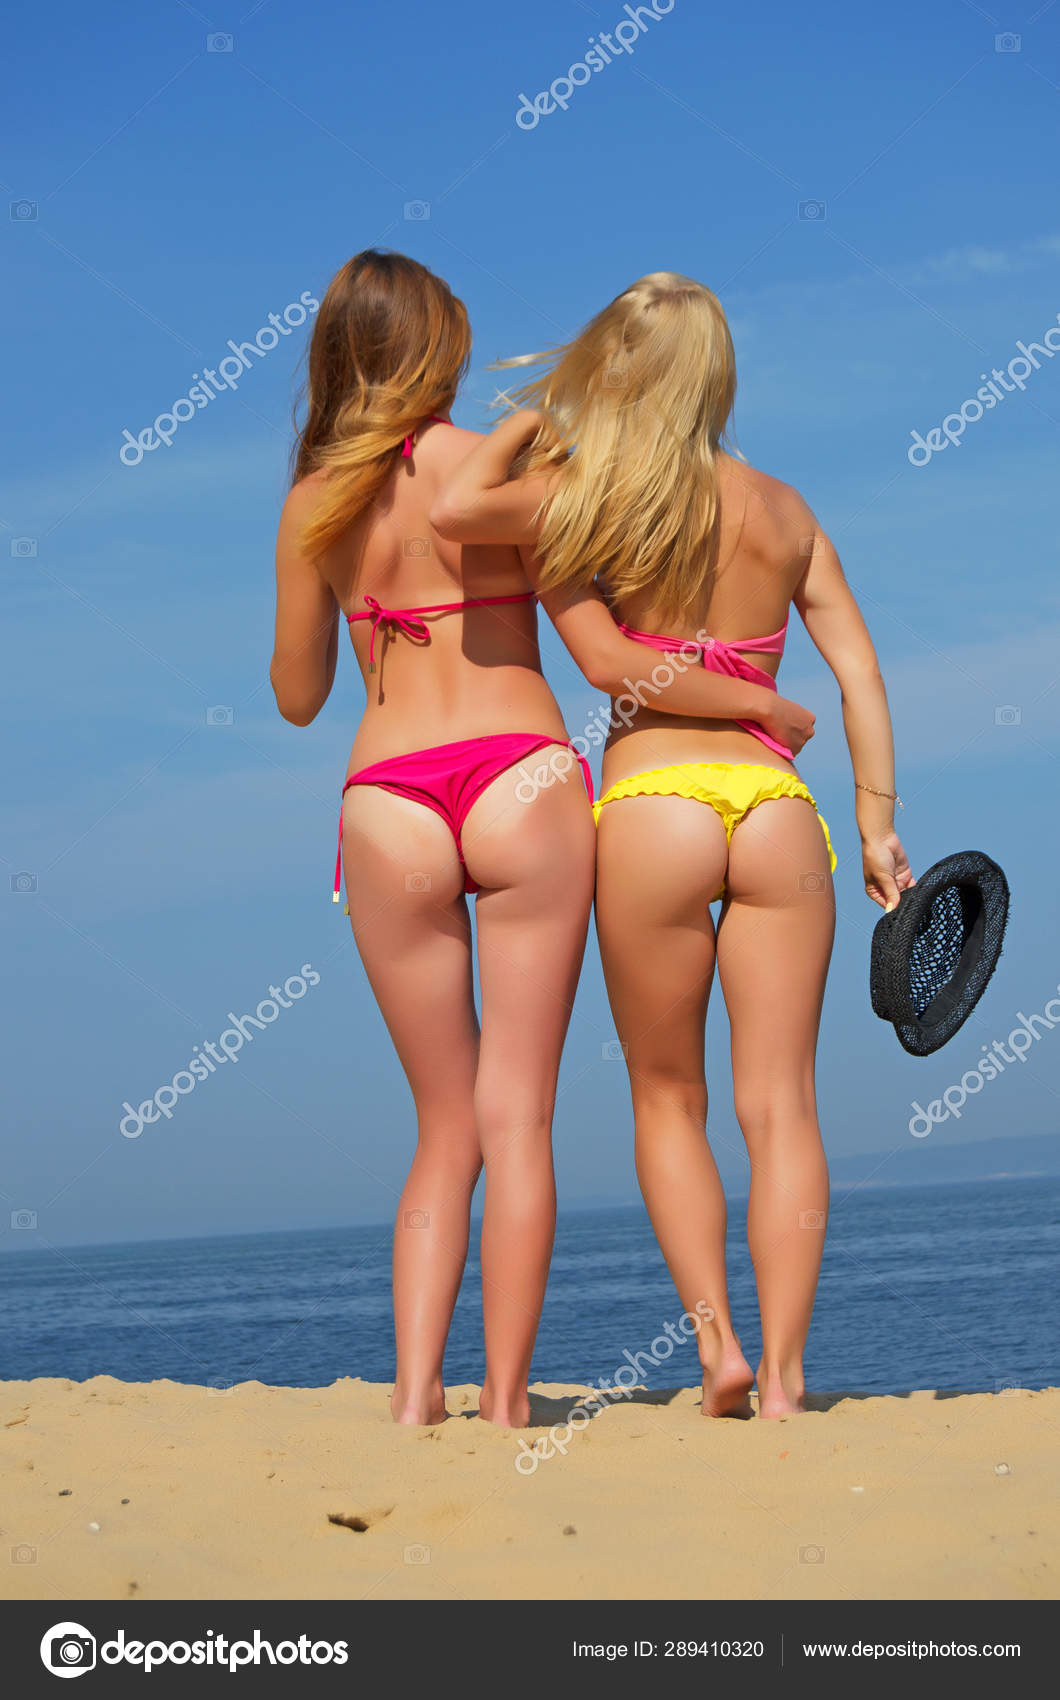 Girls In Thongs On The Beach Stock Photo C Rrraum 289410320 The thong is a garment generally used as either underwear or as a swimsuit in some countries. girls in thongs on the beach stock photo c rrraum 289410320